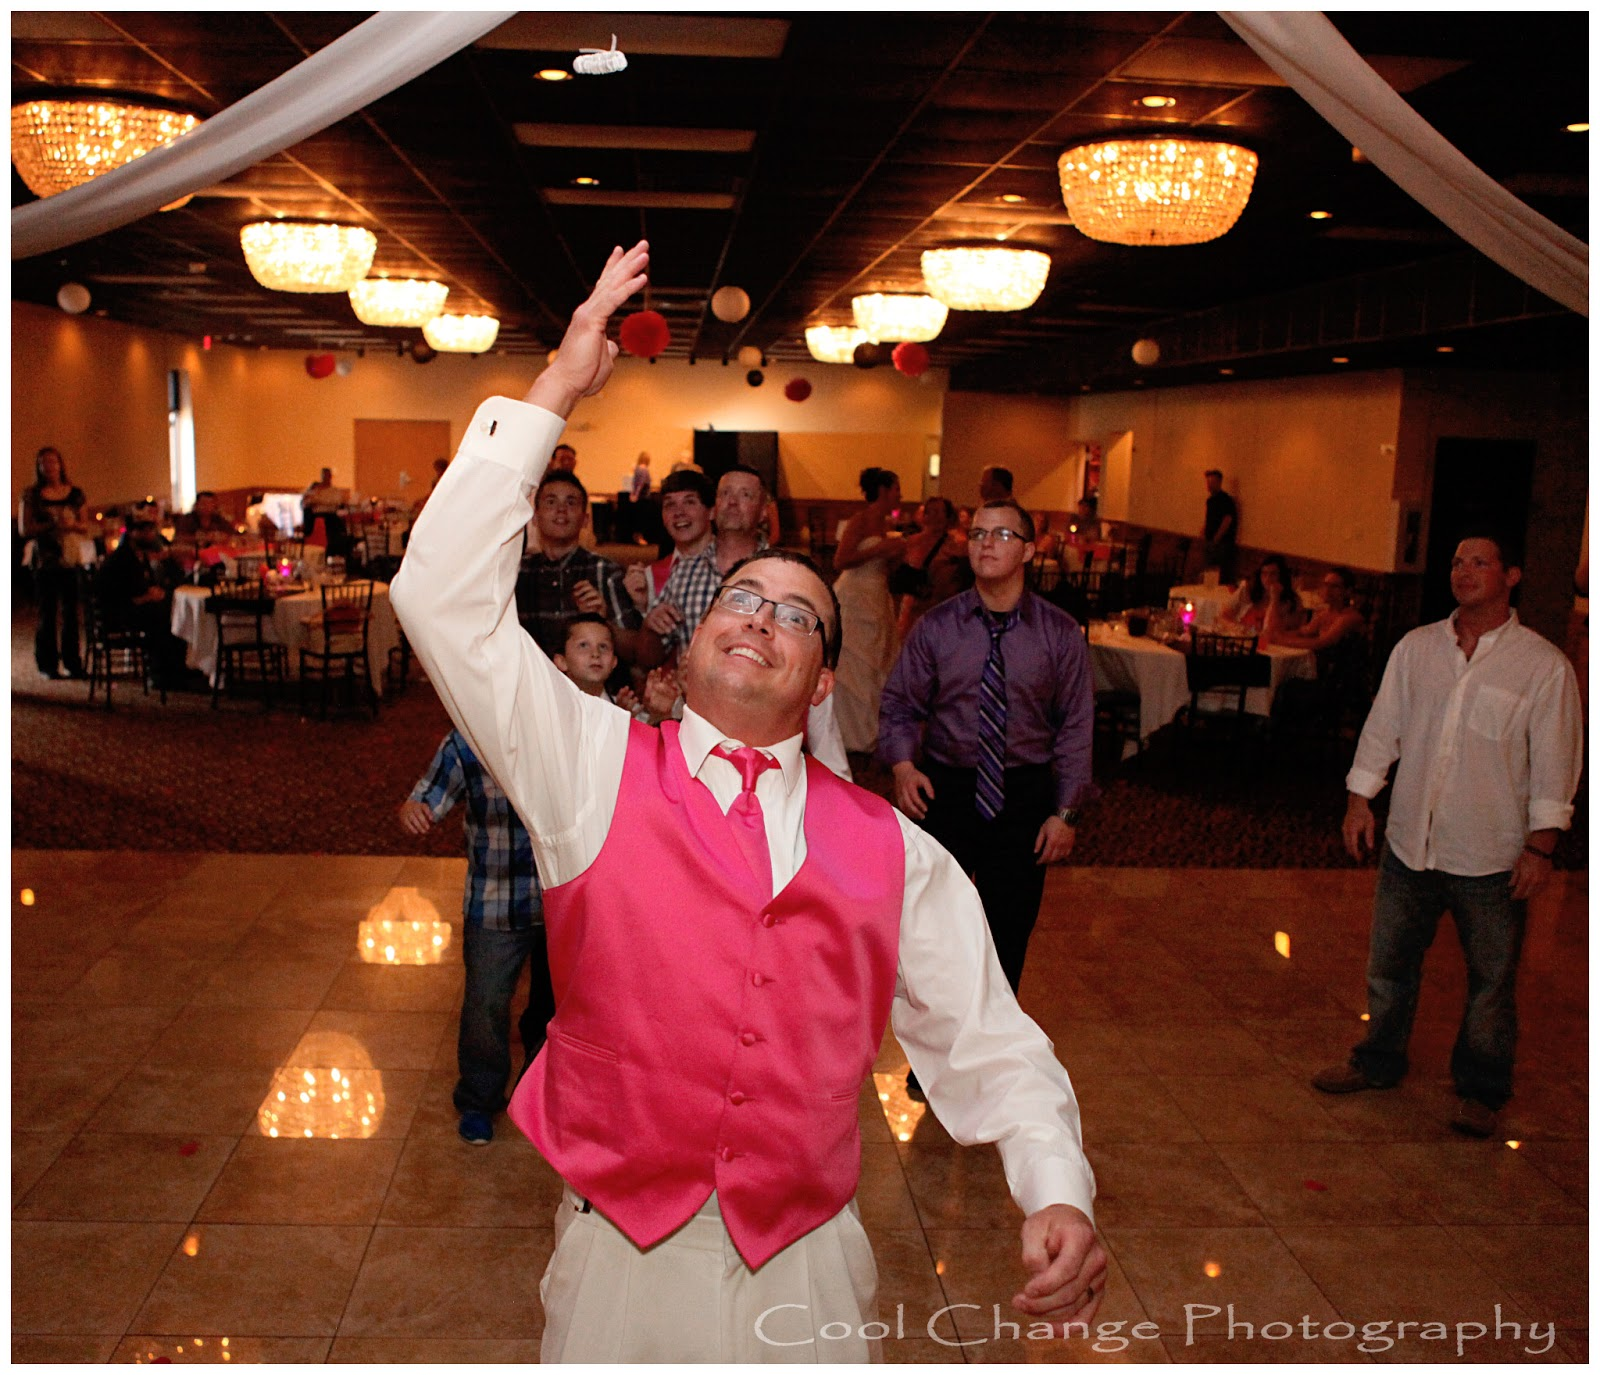 Ceremony And Reception In Same Room: Wedding Photography: The